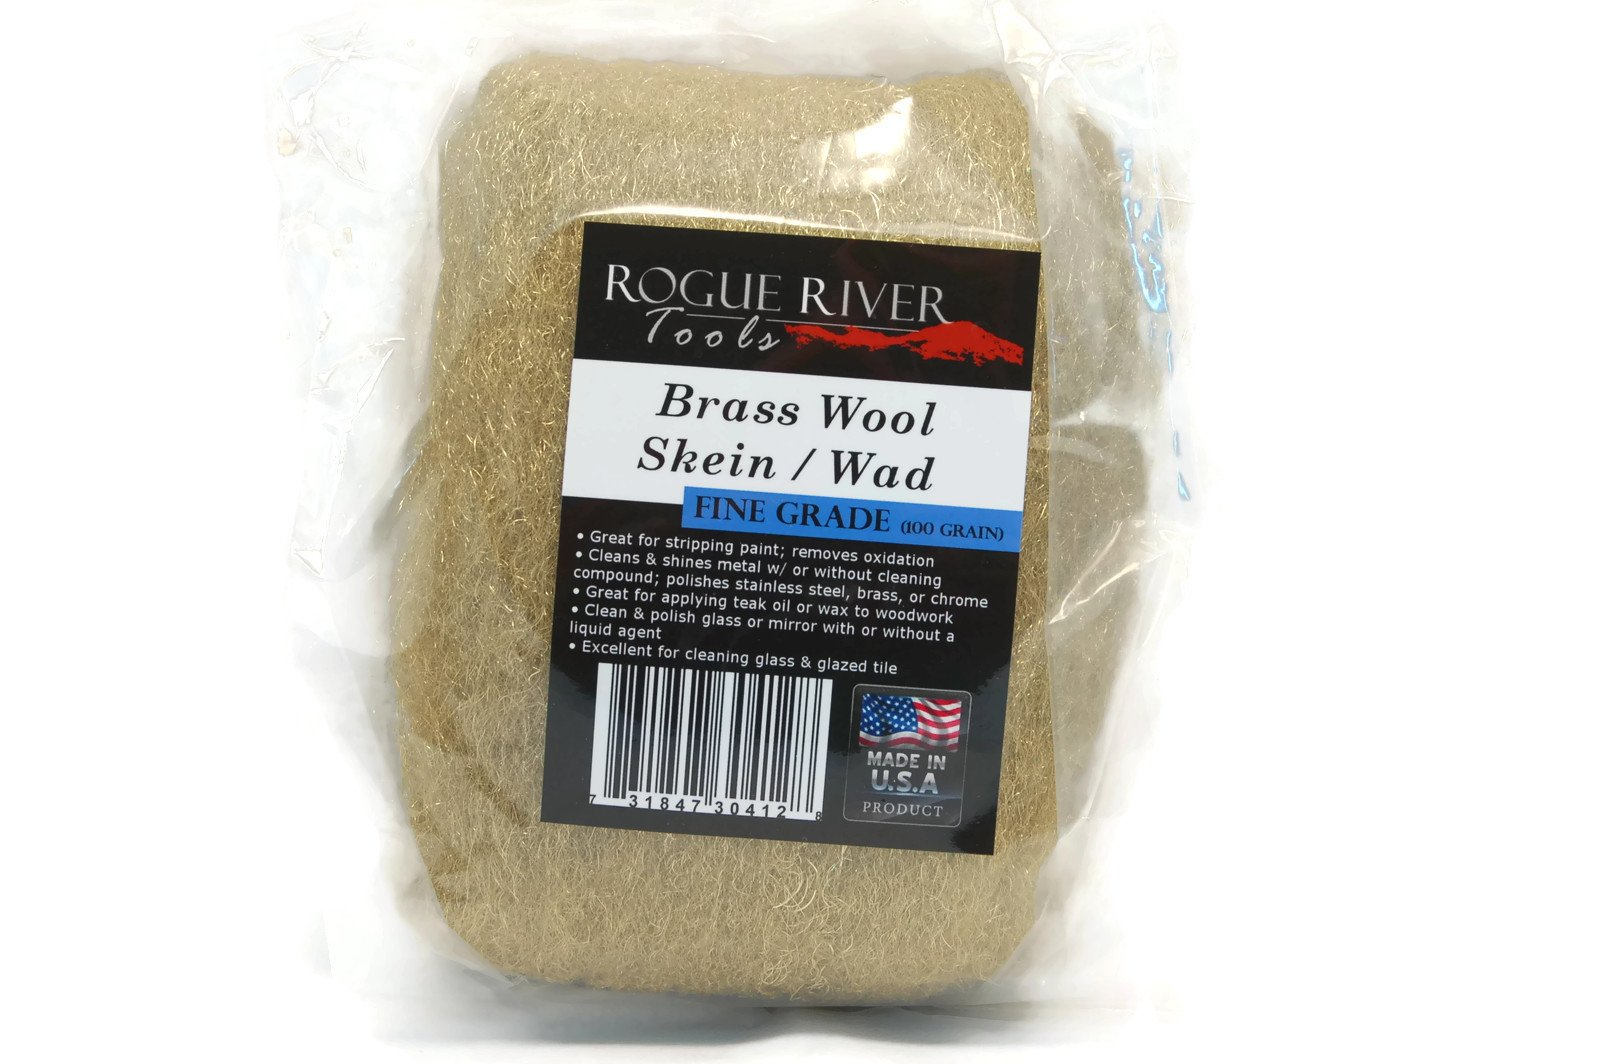 Brass Wool- Skein Pad Wad (Fine Grade, 100 Gr.) by Rogue River Tools